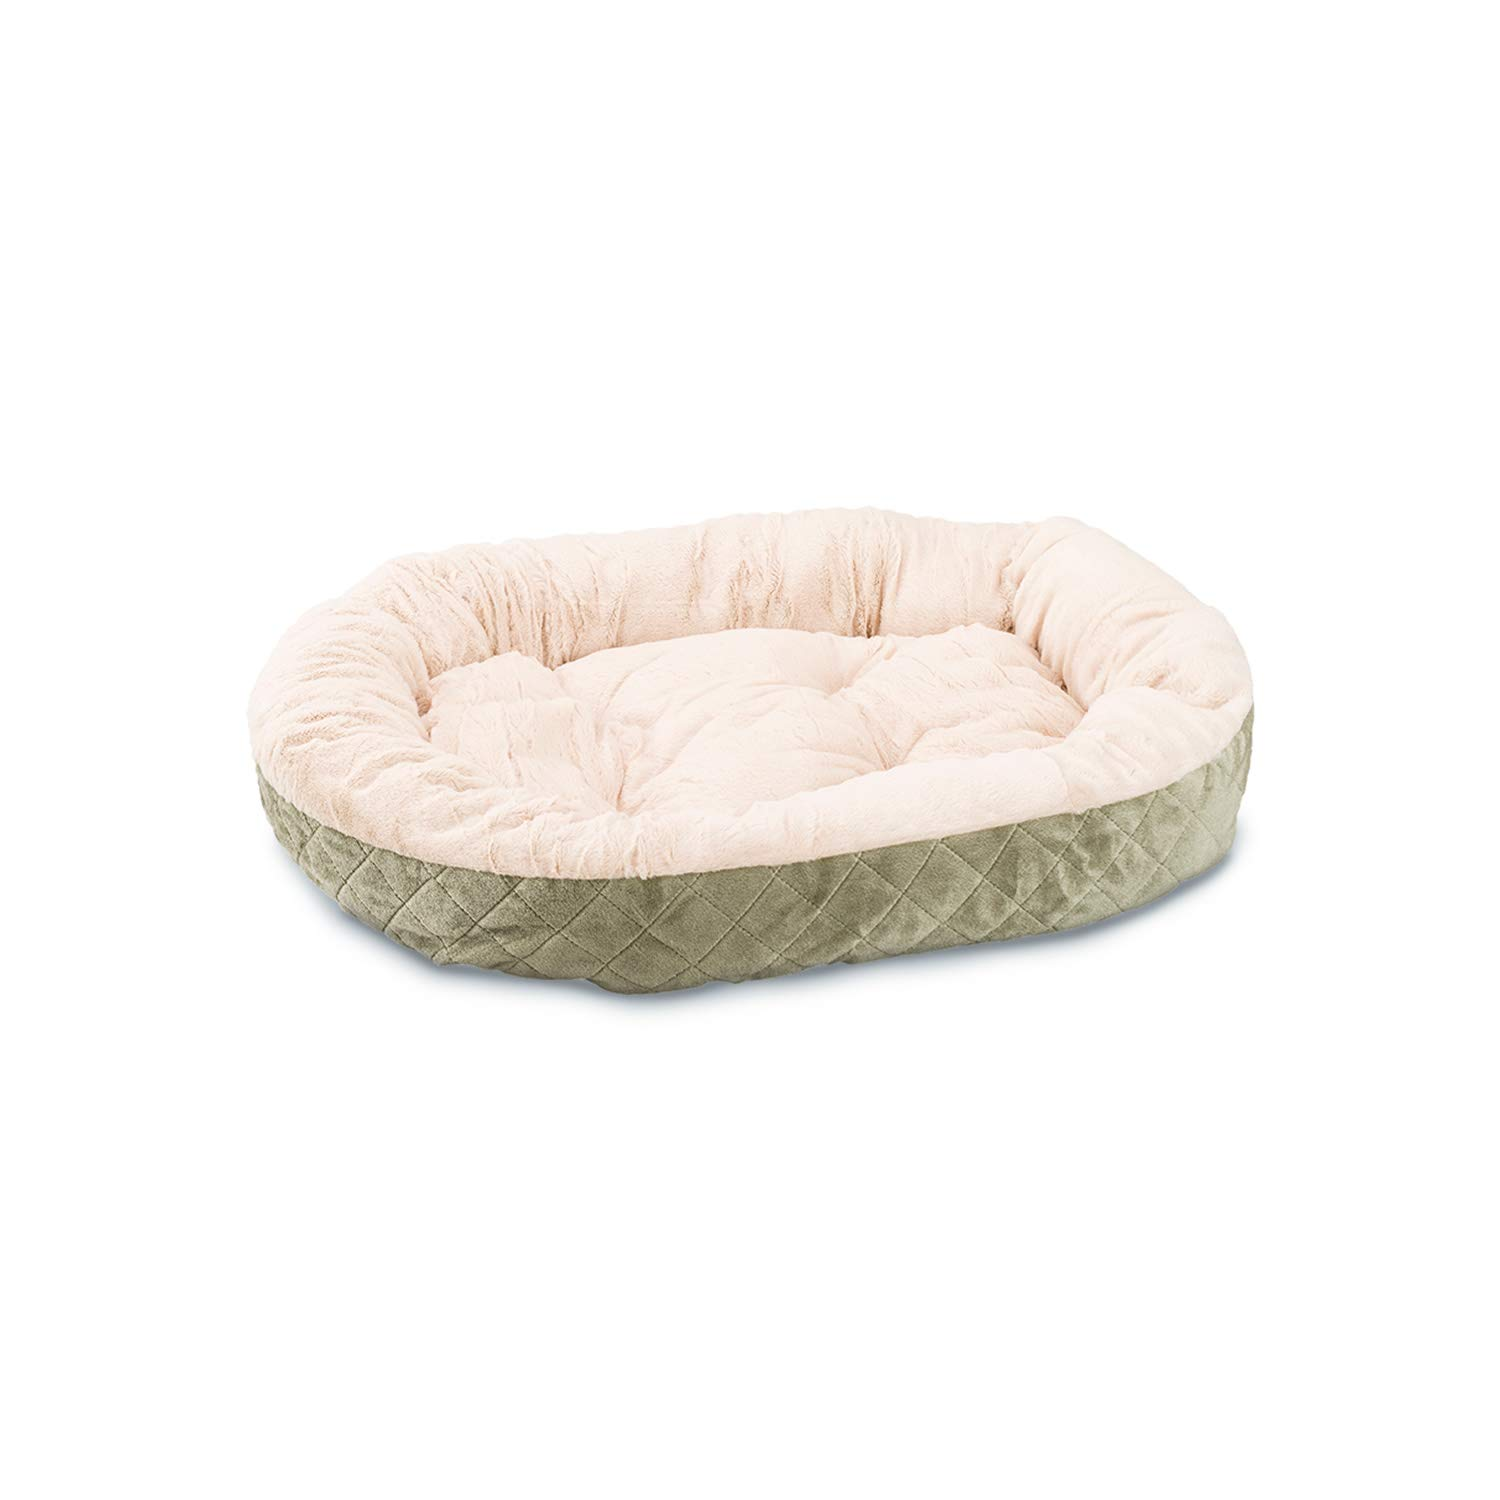 Ethical Pets Sleep Zone Quilted Oval Cuddler Pet Bed, 26 , Sage